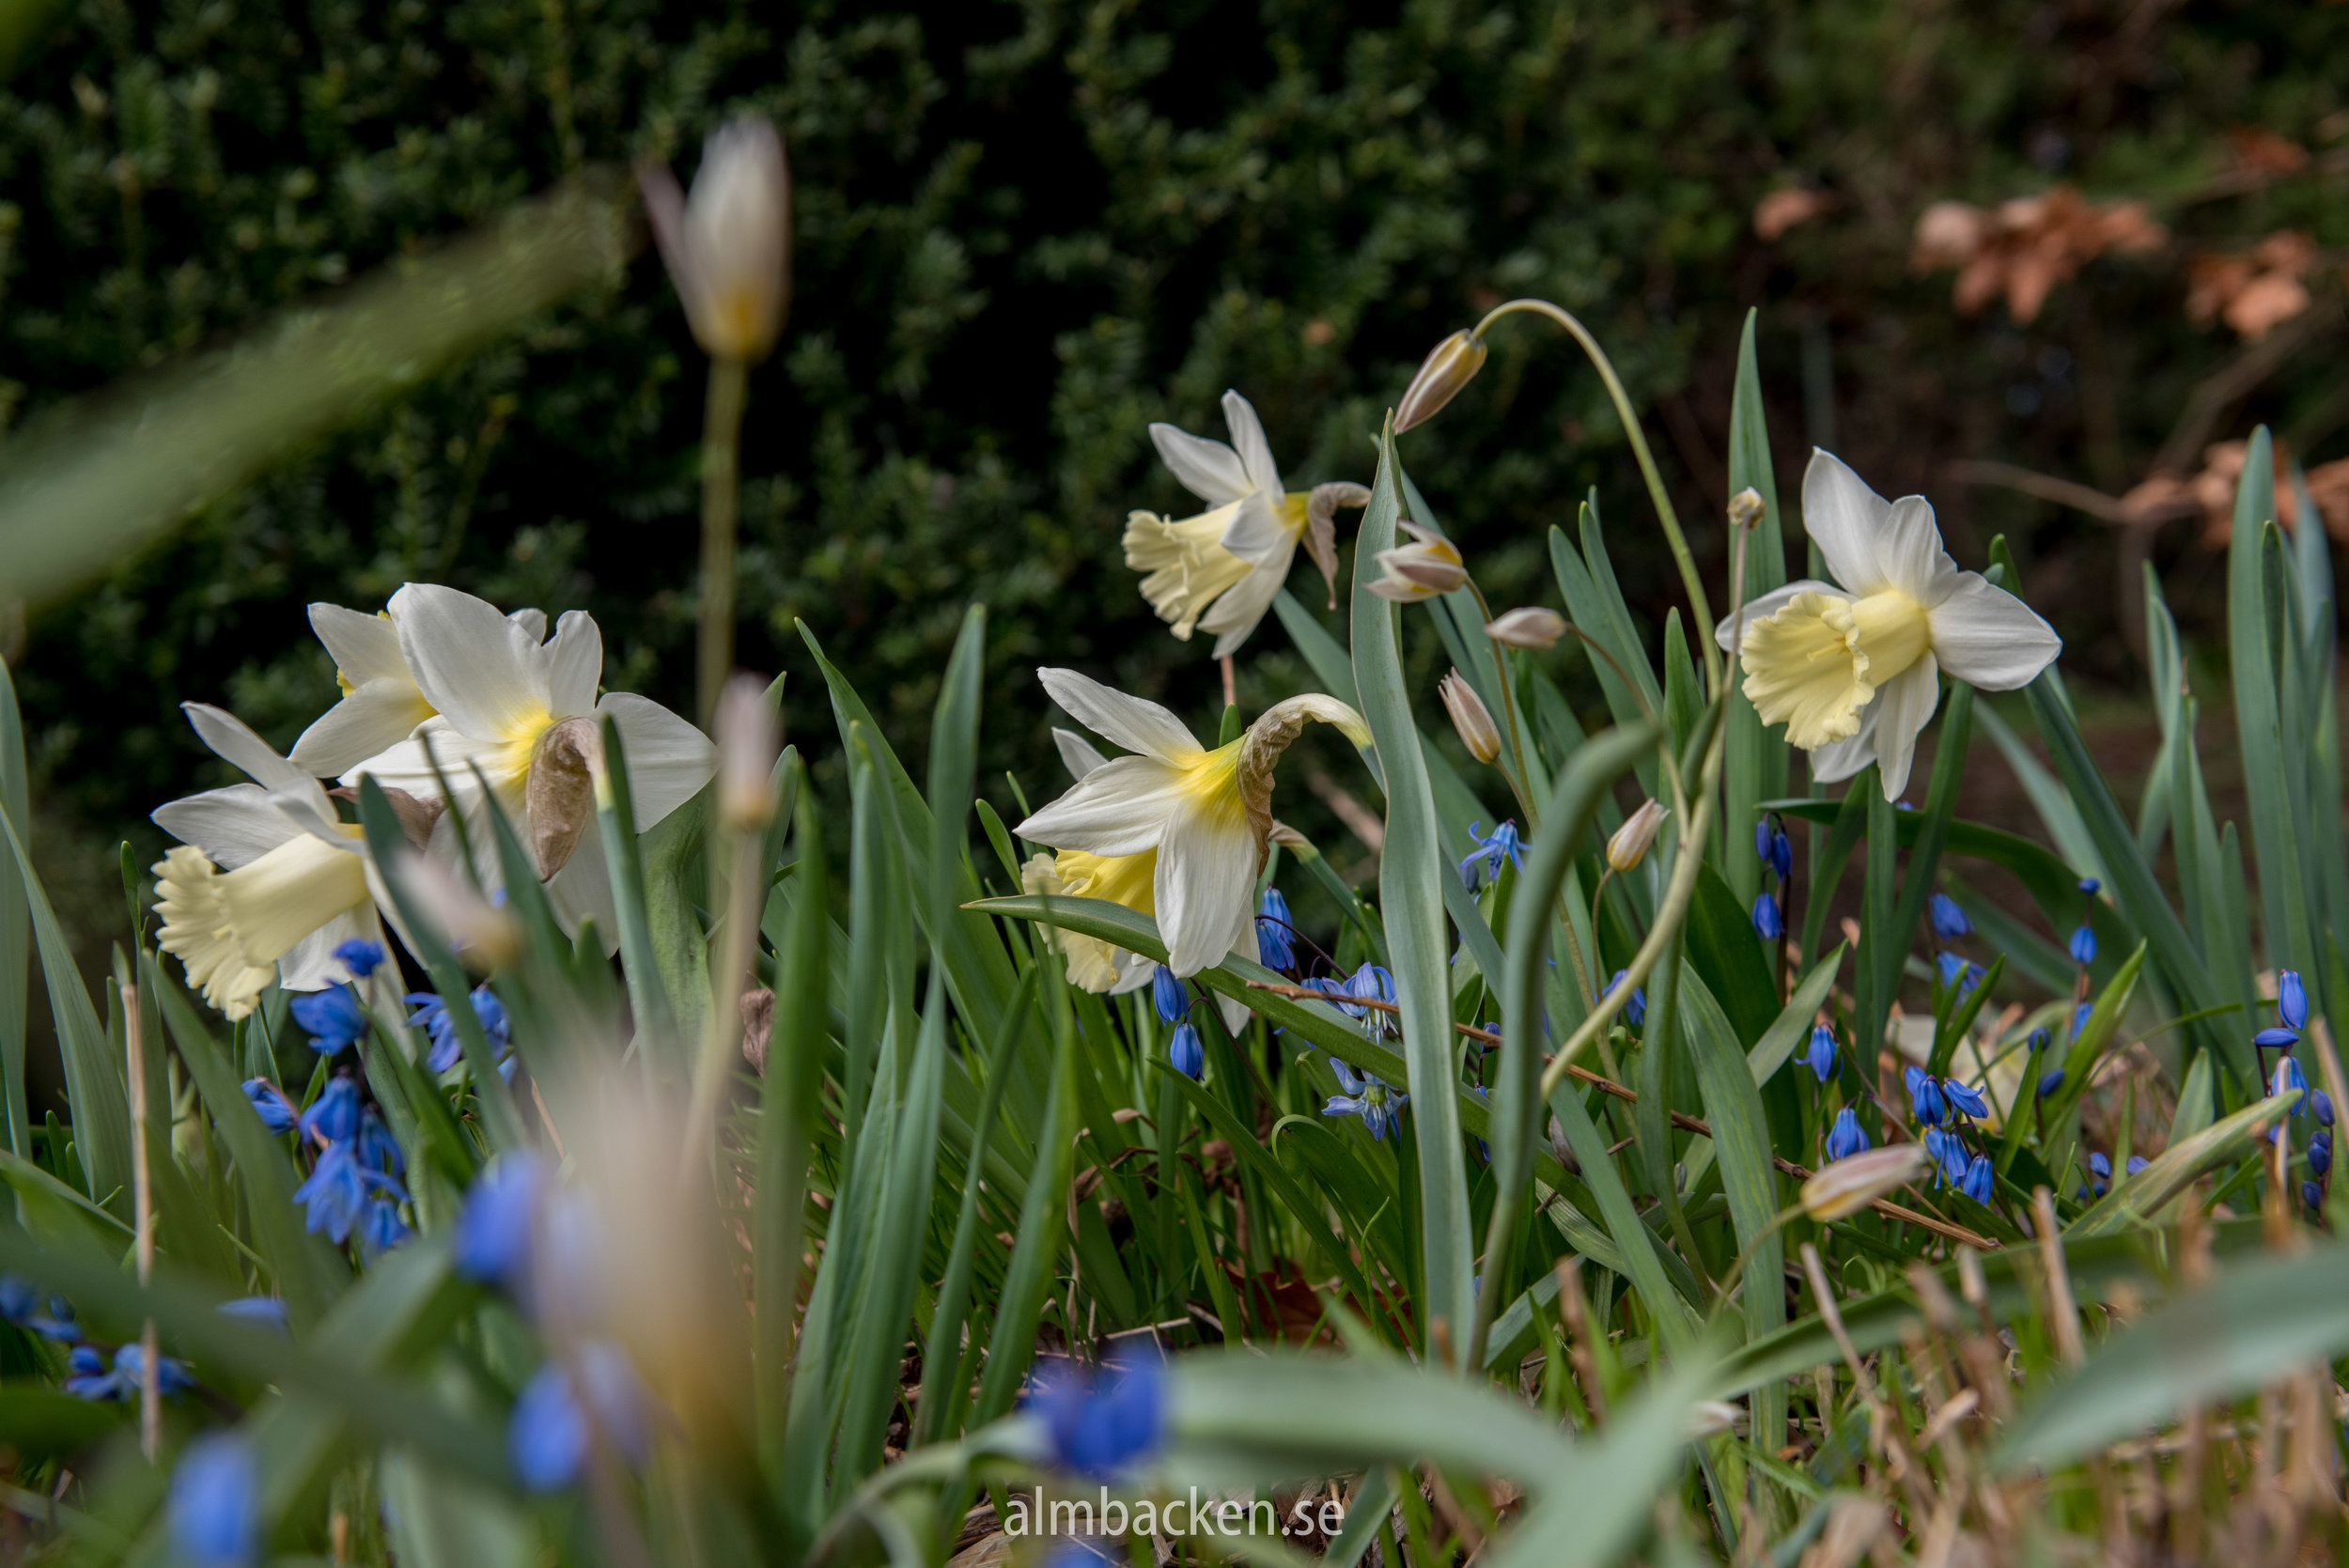 Narcissus-Mount-Hood-scilla-narciss.jpg